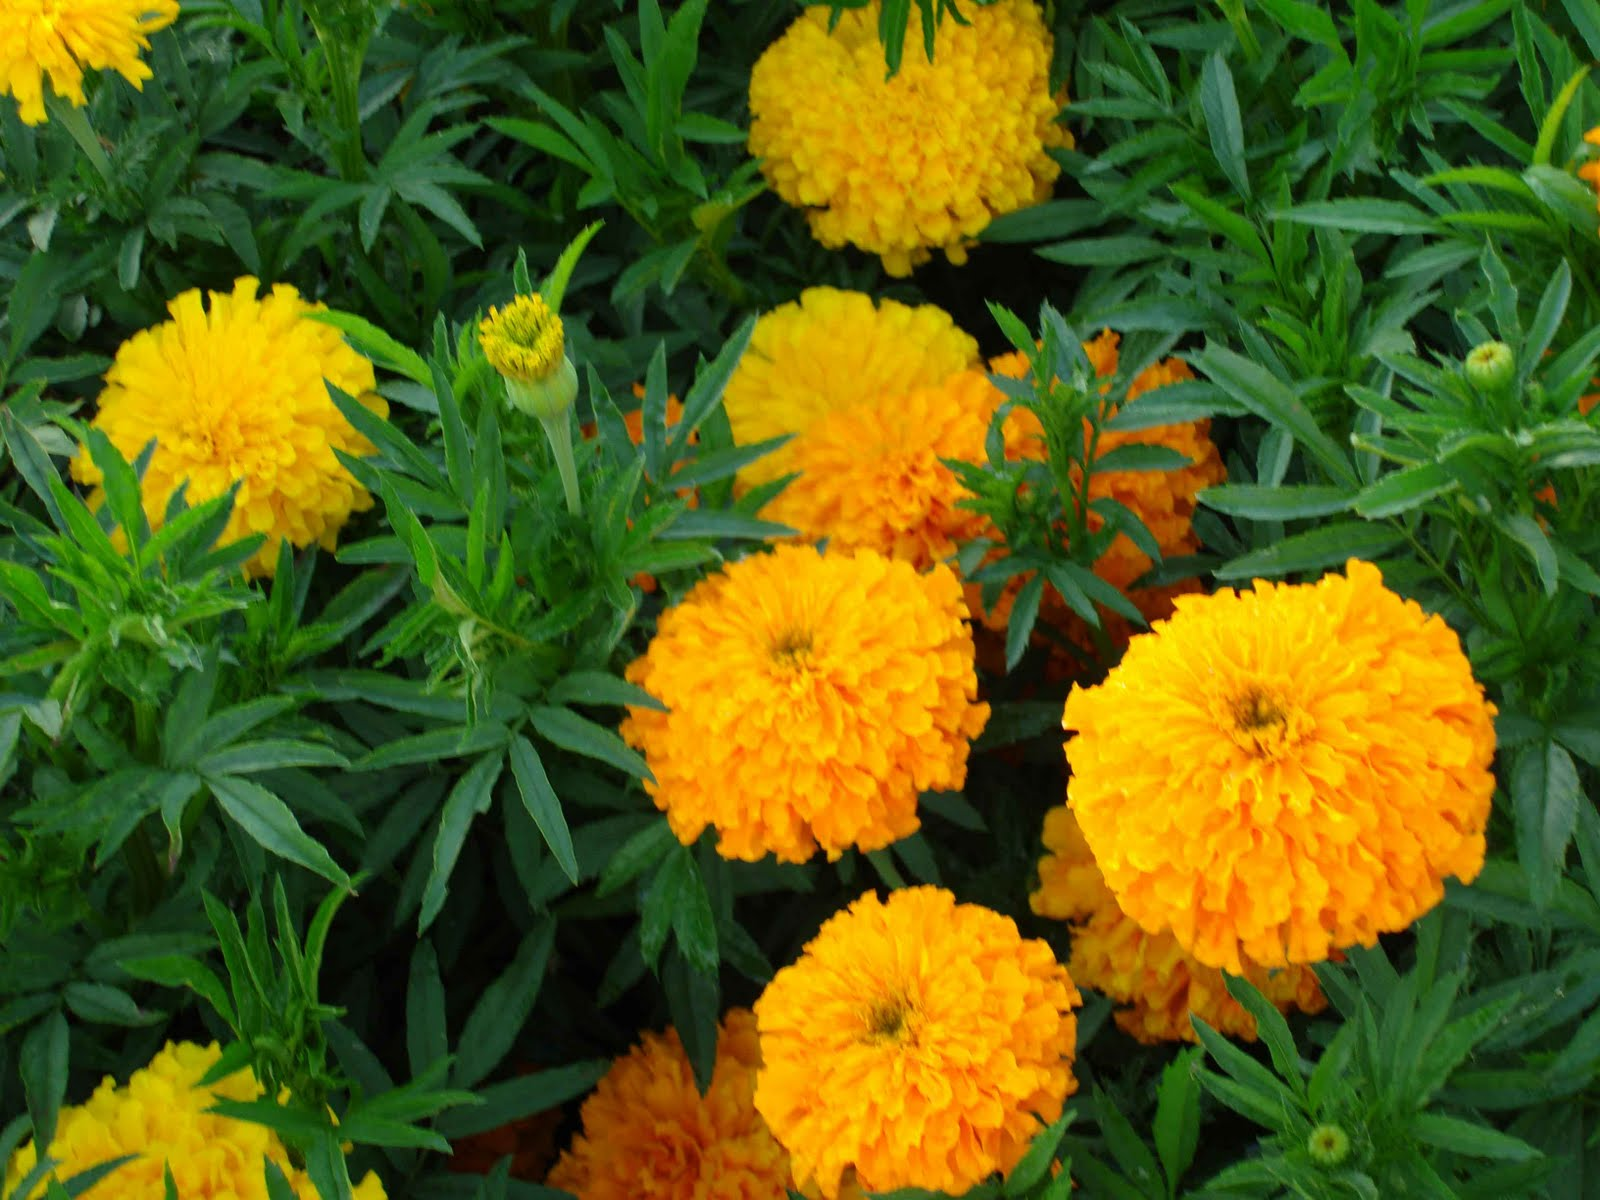 Marigold flower wallpaper hd wallpapers widescreen desktop backgrounds backg